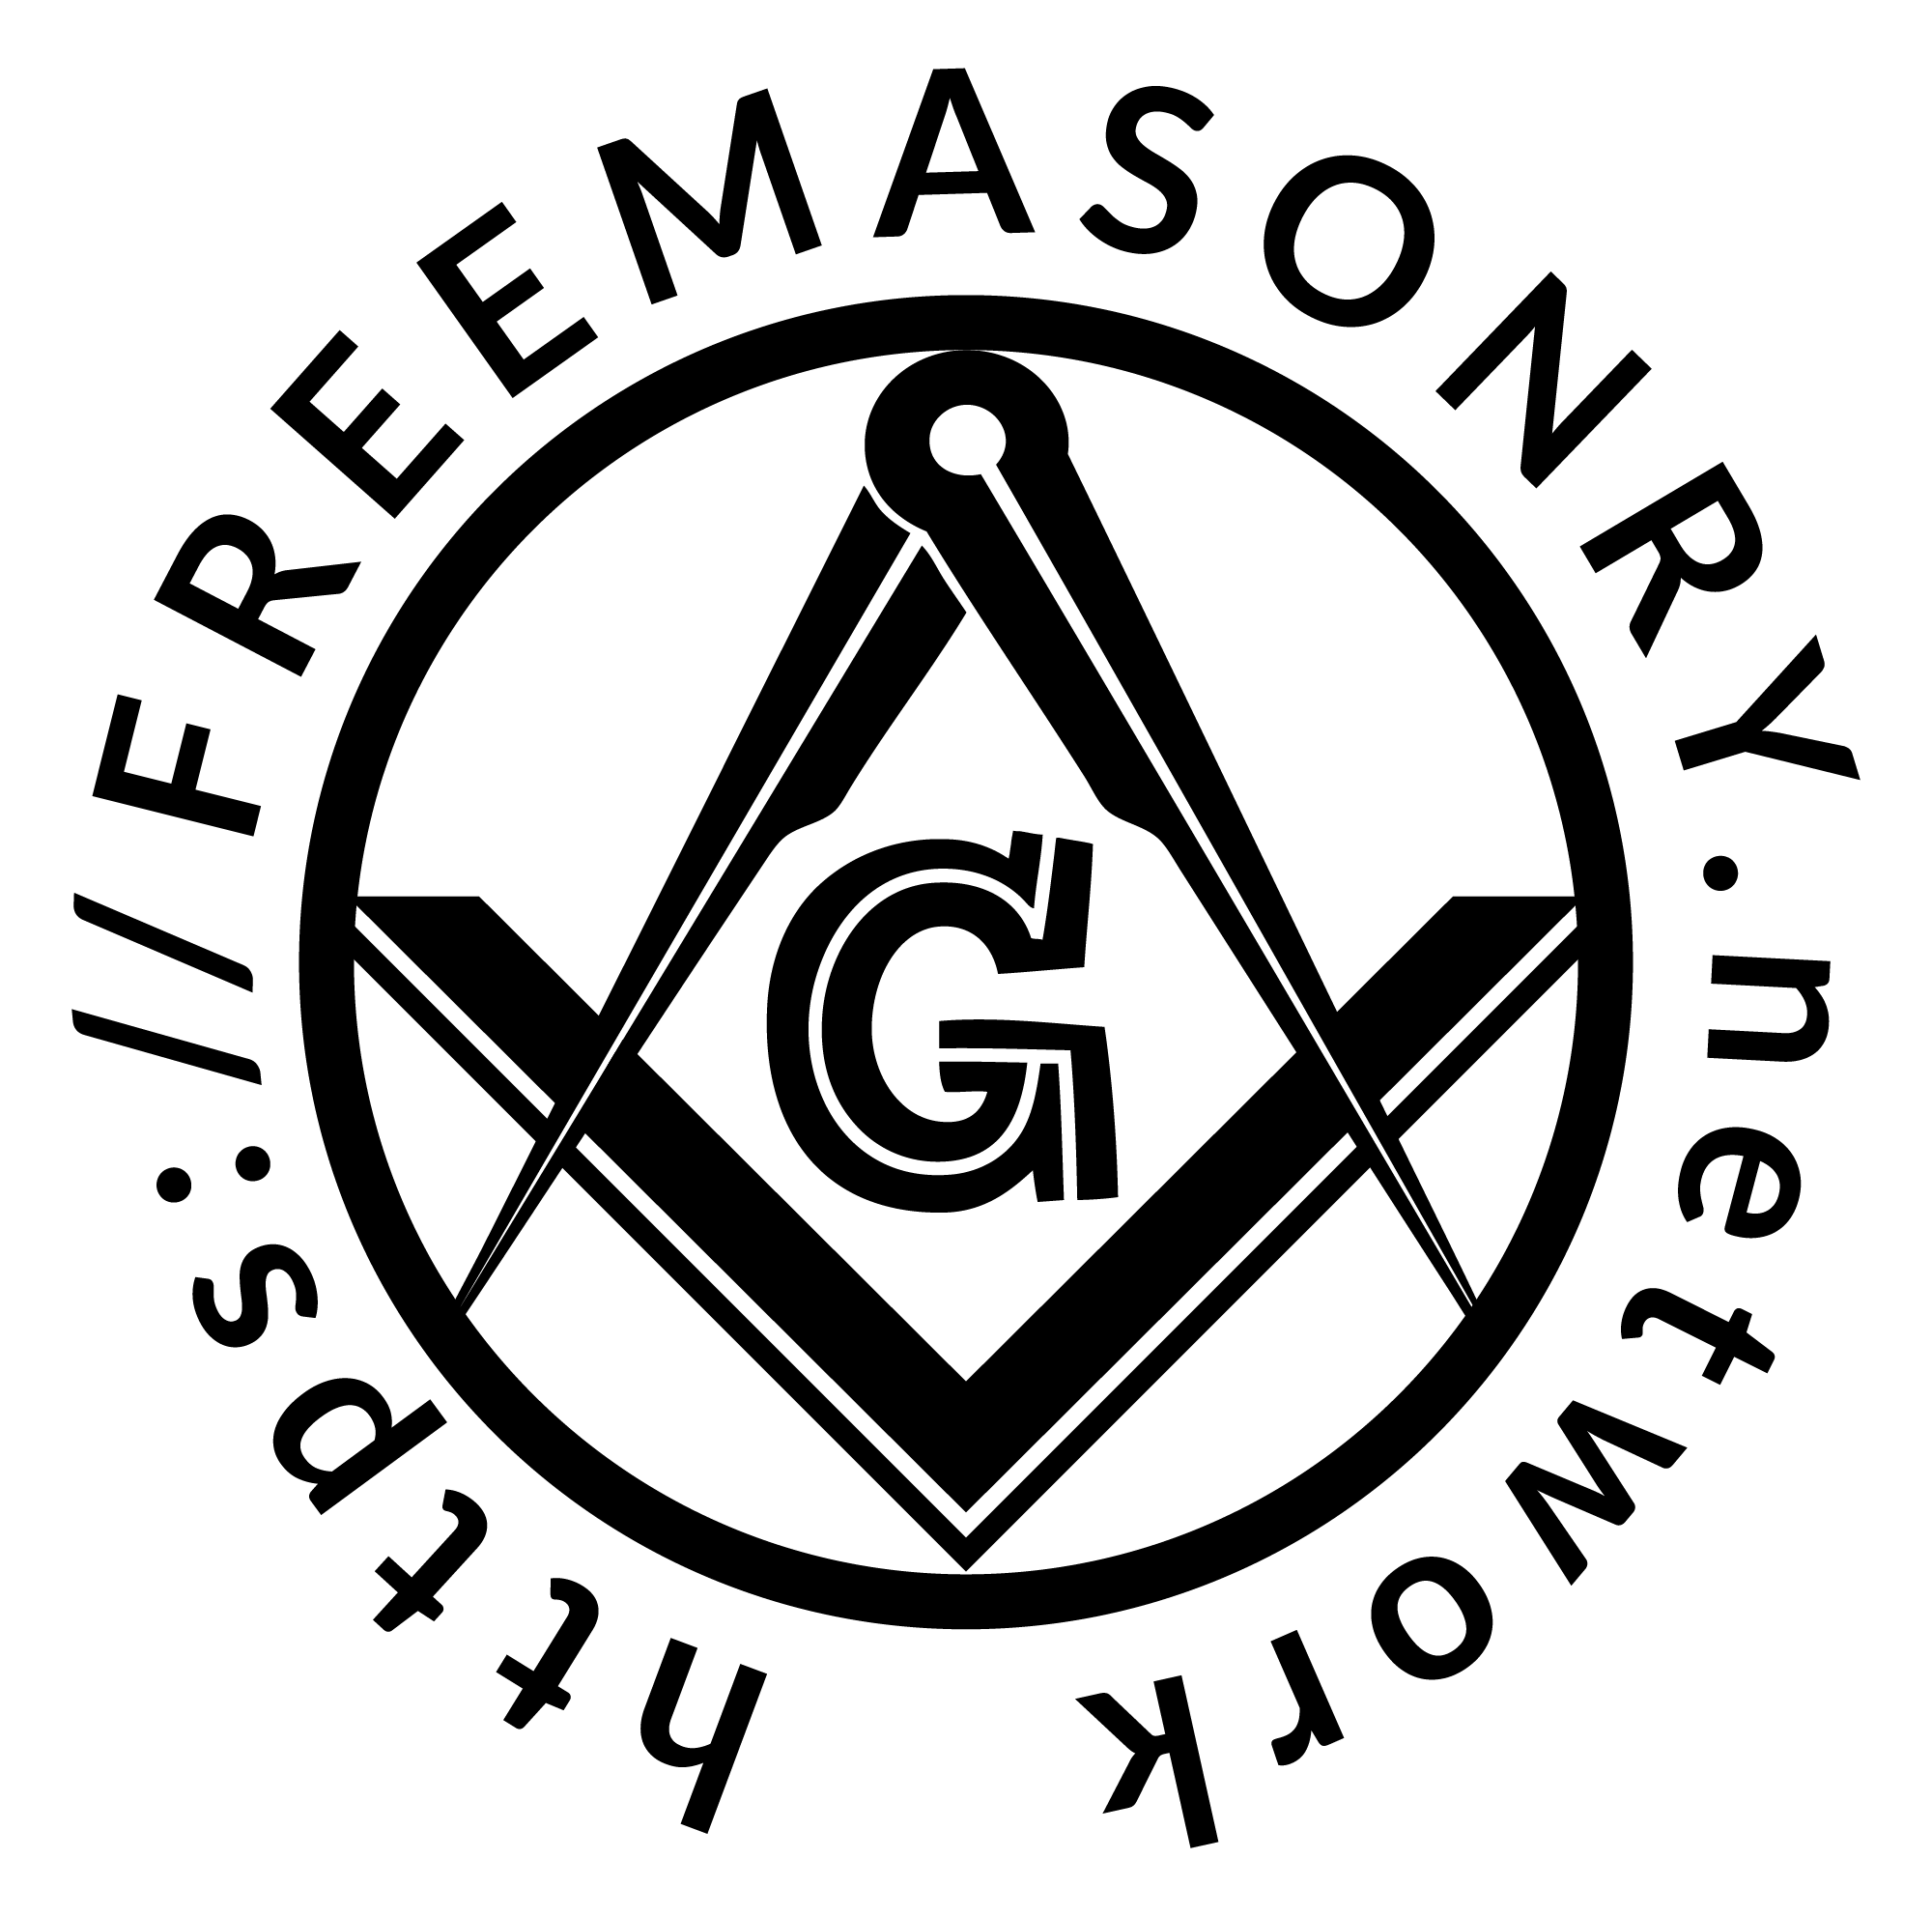 MASONIC LEGEND OF HIRAM